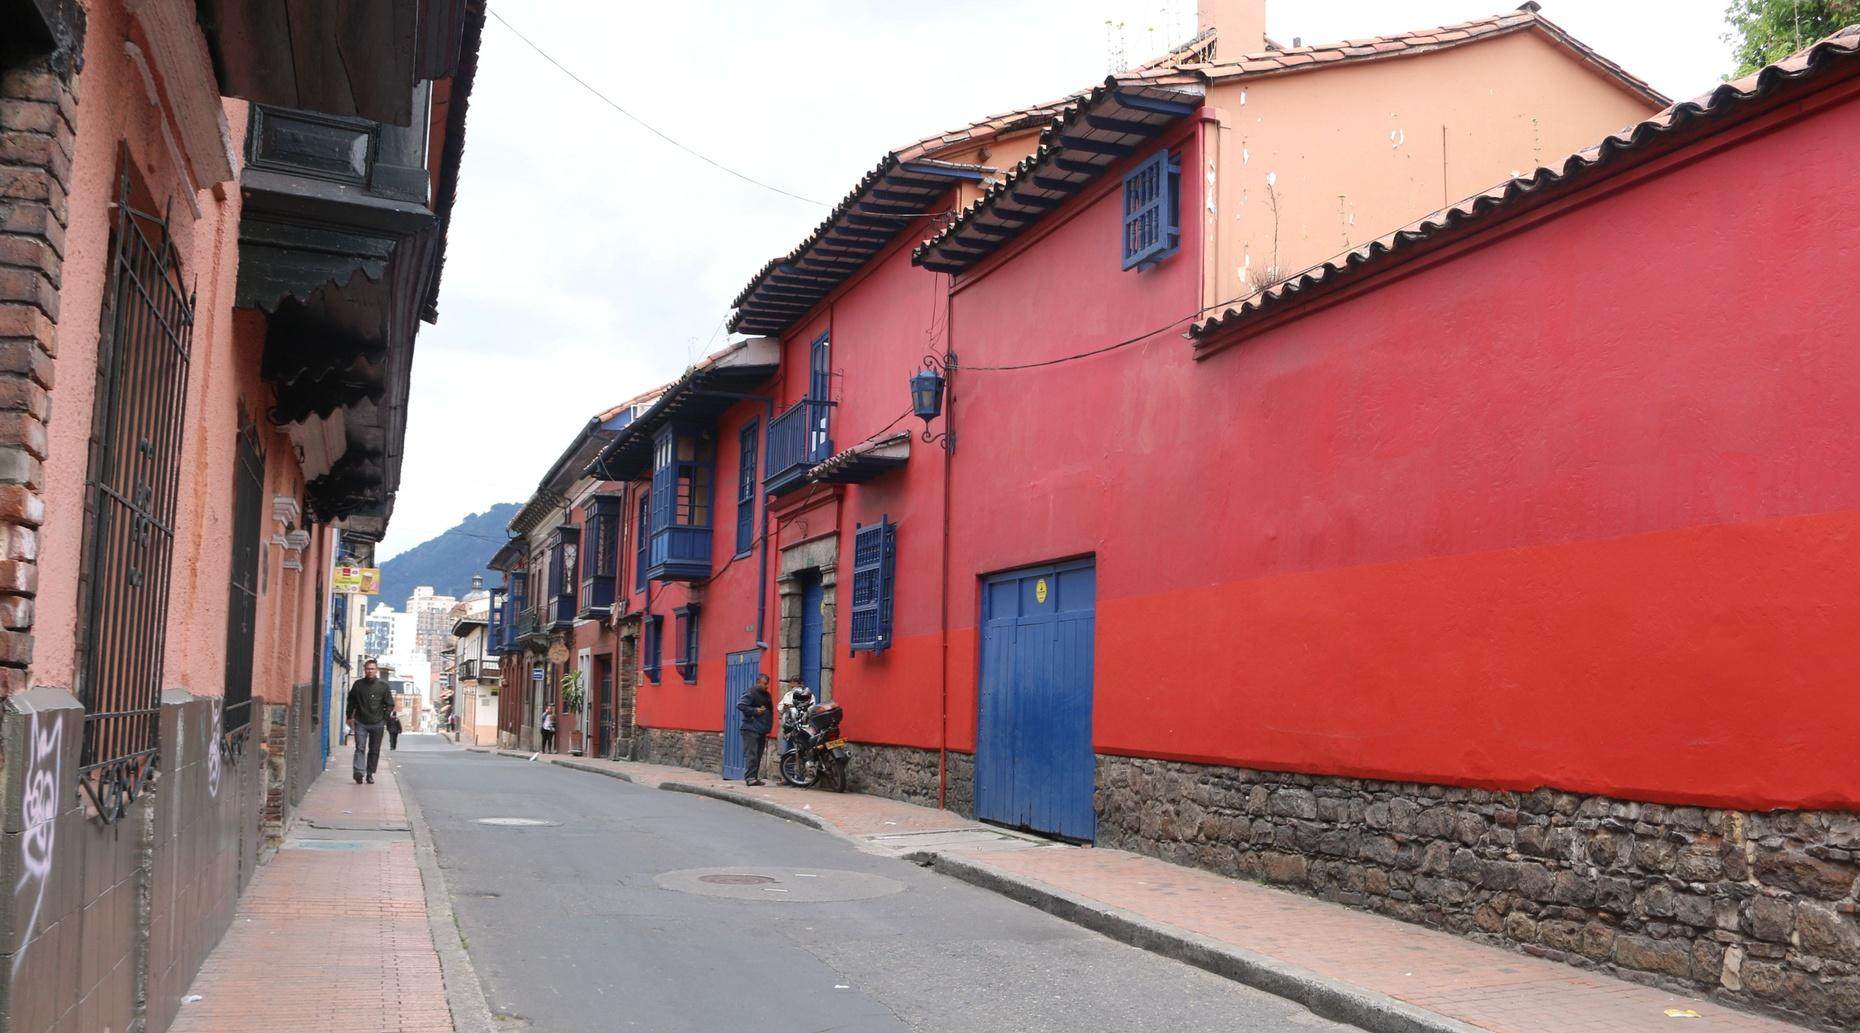 Guided Walking Tour in La Candelaria